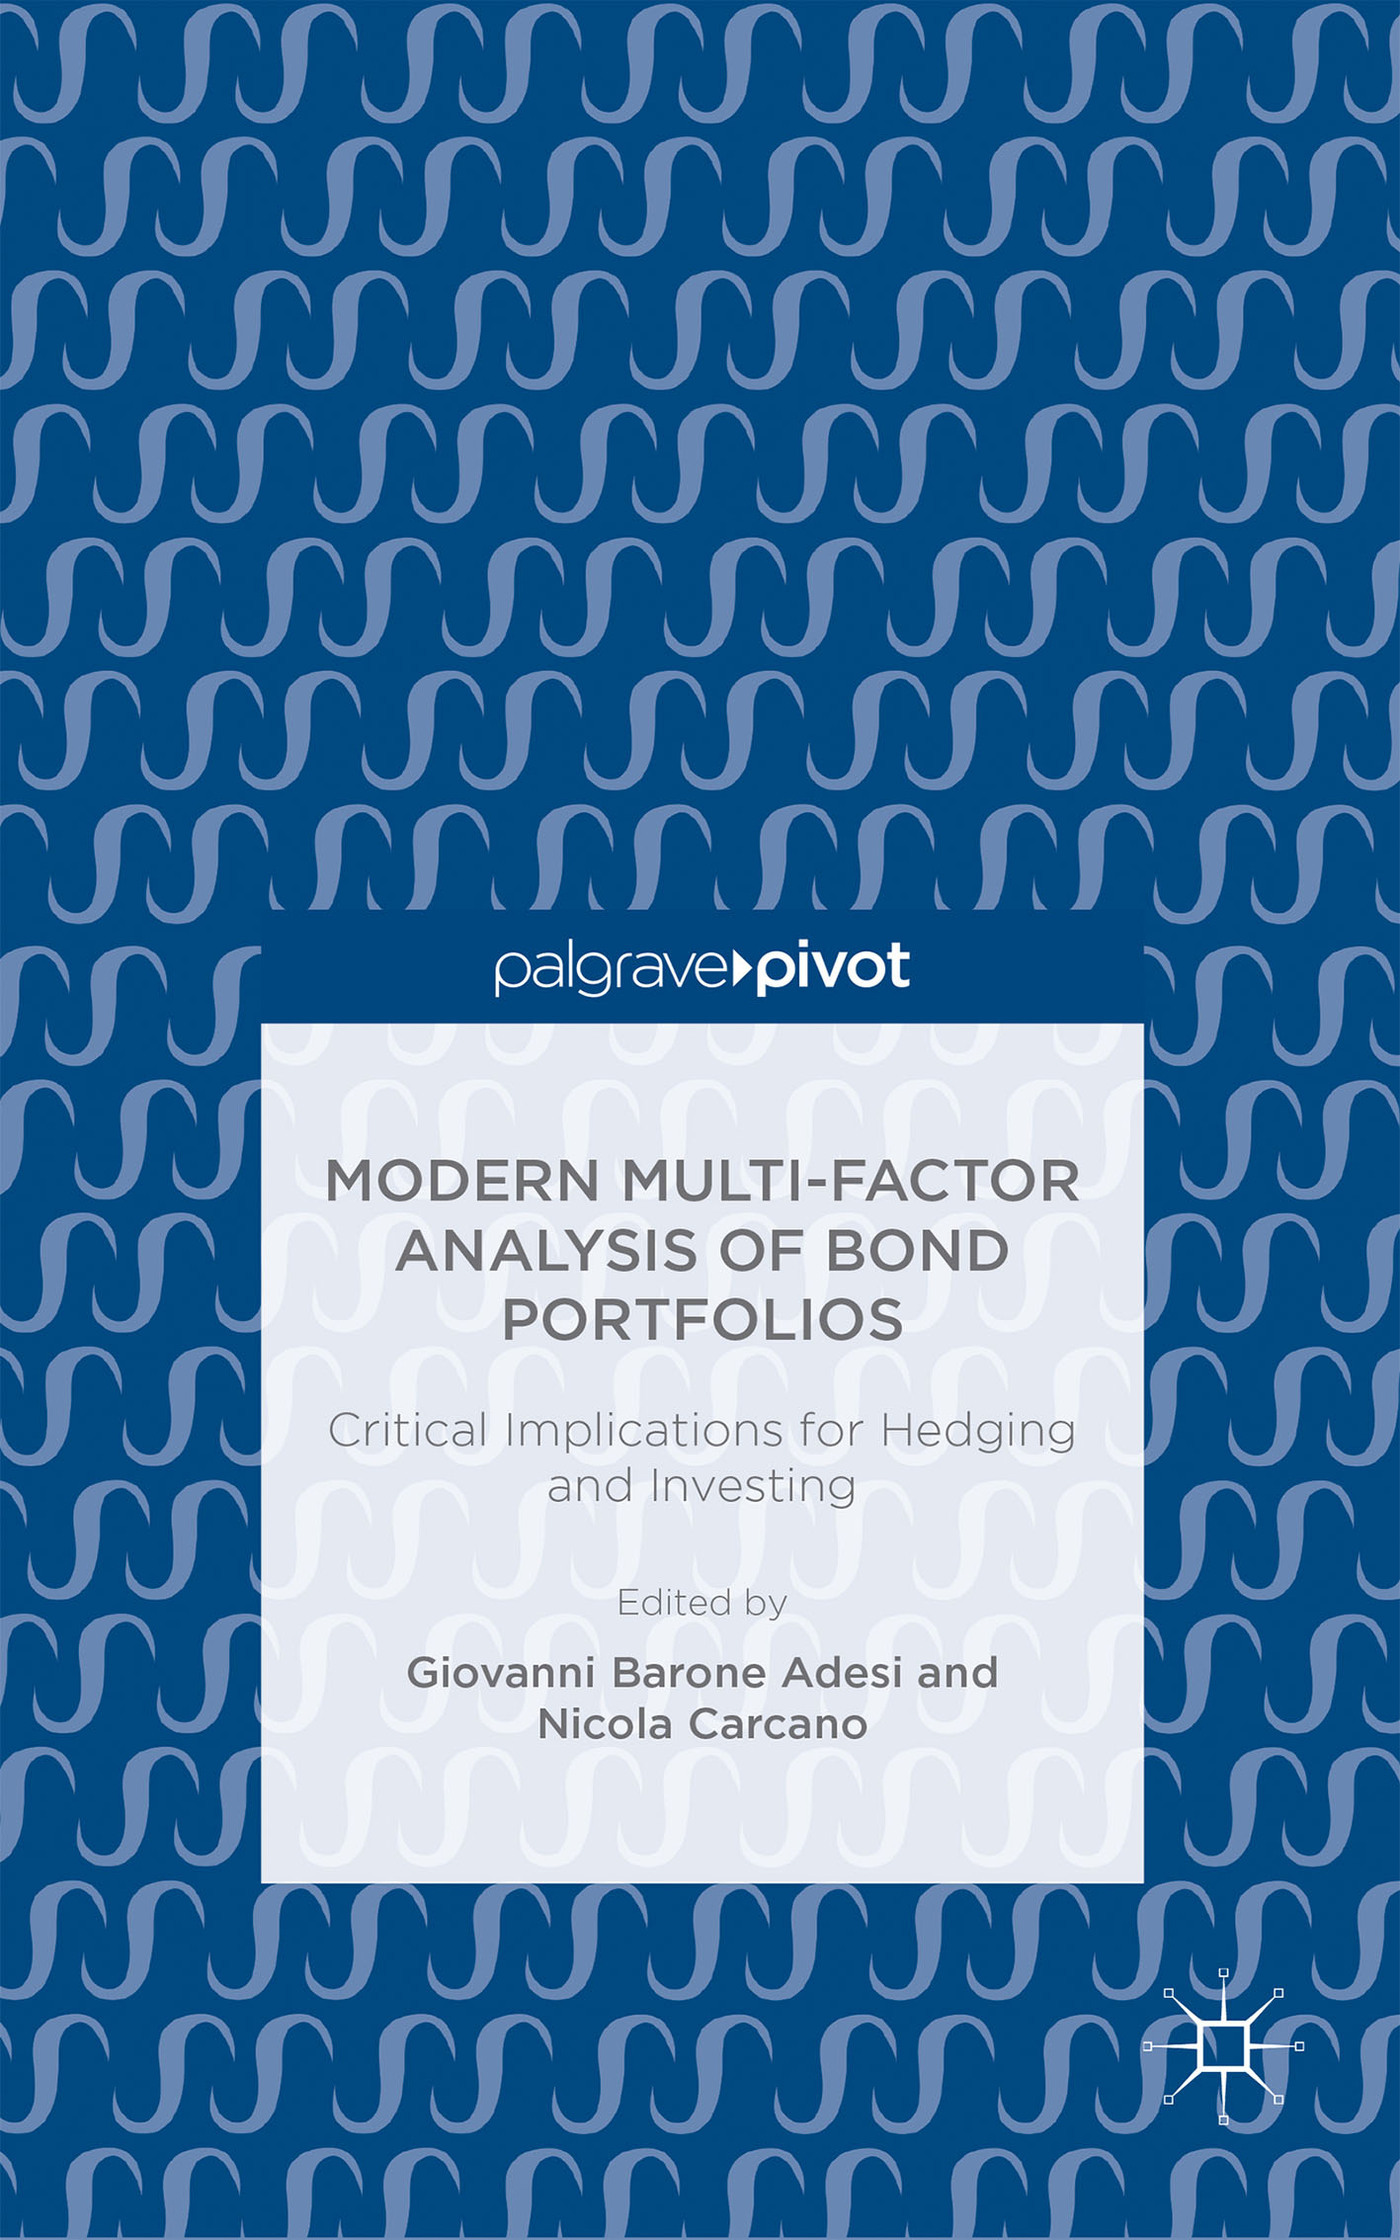 Modern Multi-Factor Analysis of Bond Portfolios Critical Implications for Hedging and Investing